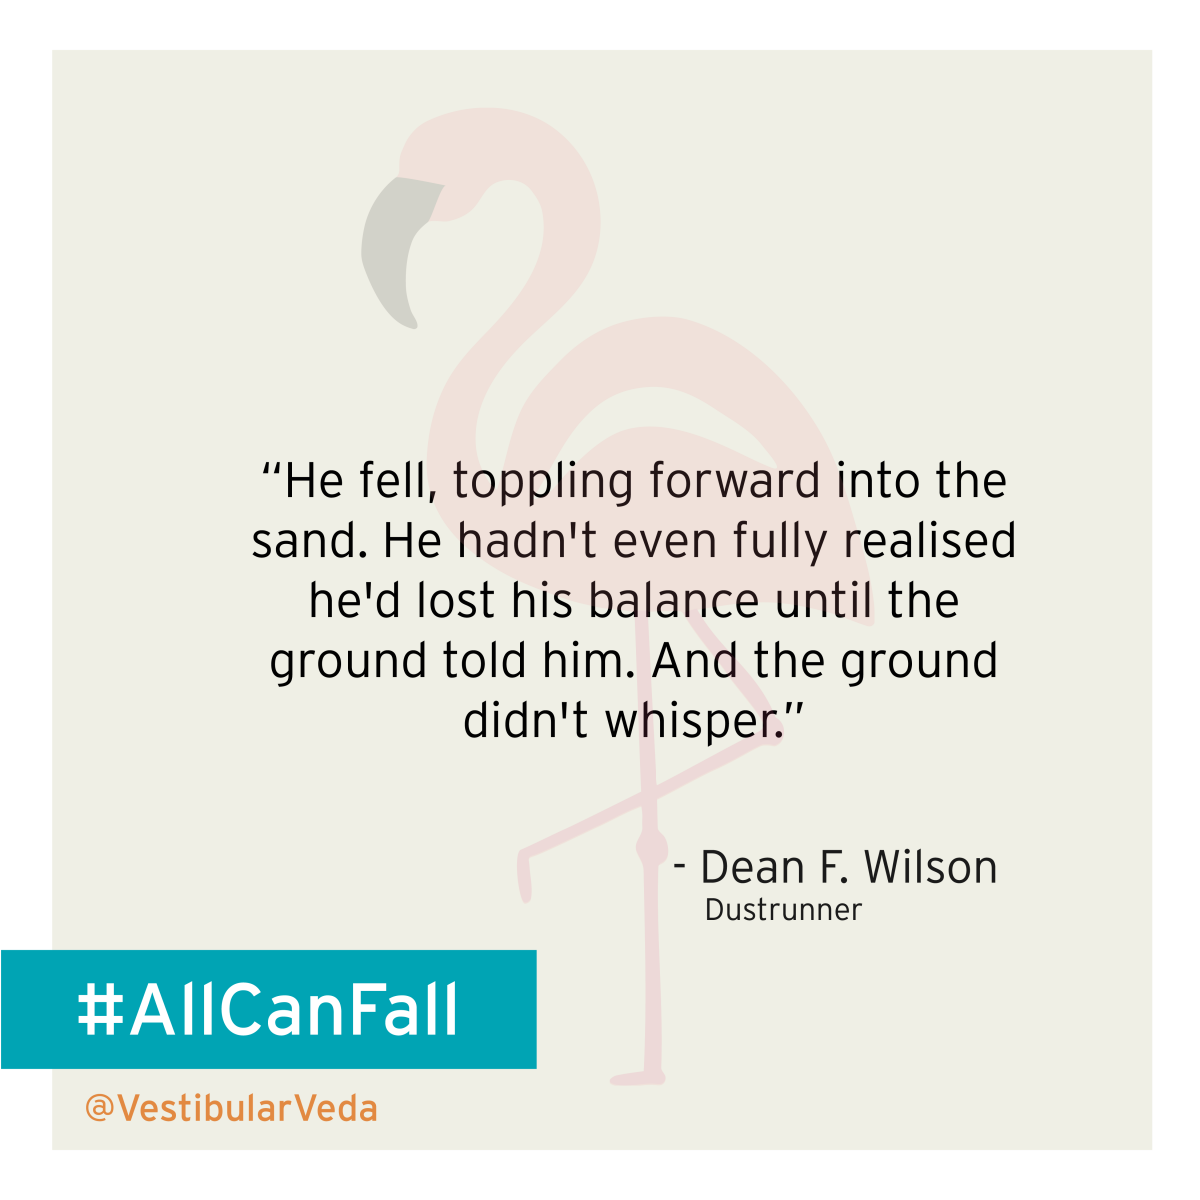 """He fell, toppling forward into the sand. He hadn't even fully realised he'd lost his balance until the ground told him. And the ground didn't whisper.""  ― Dean F. Wilson, Dustrunner"